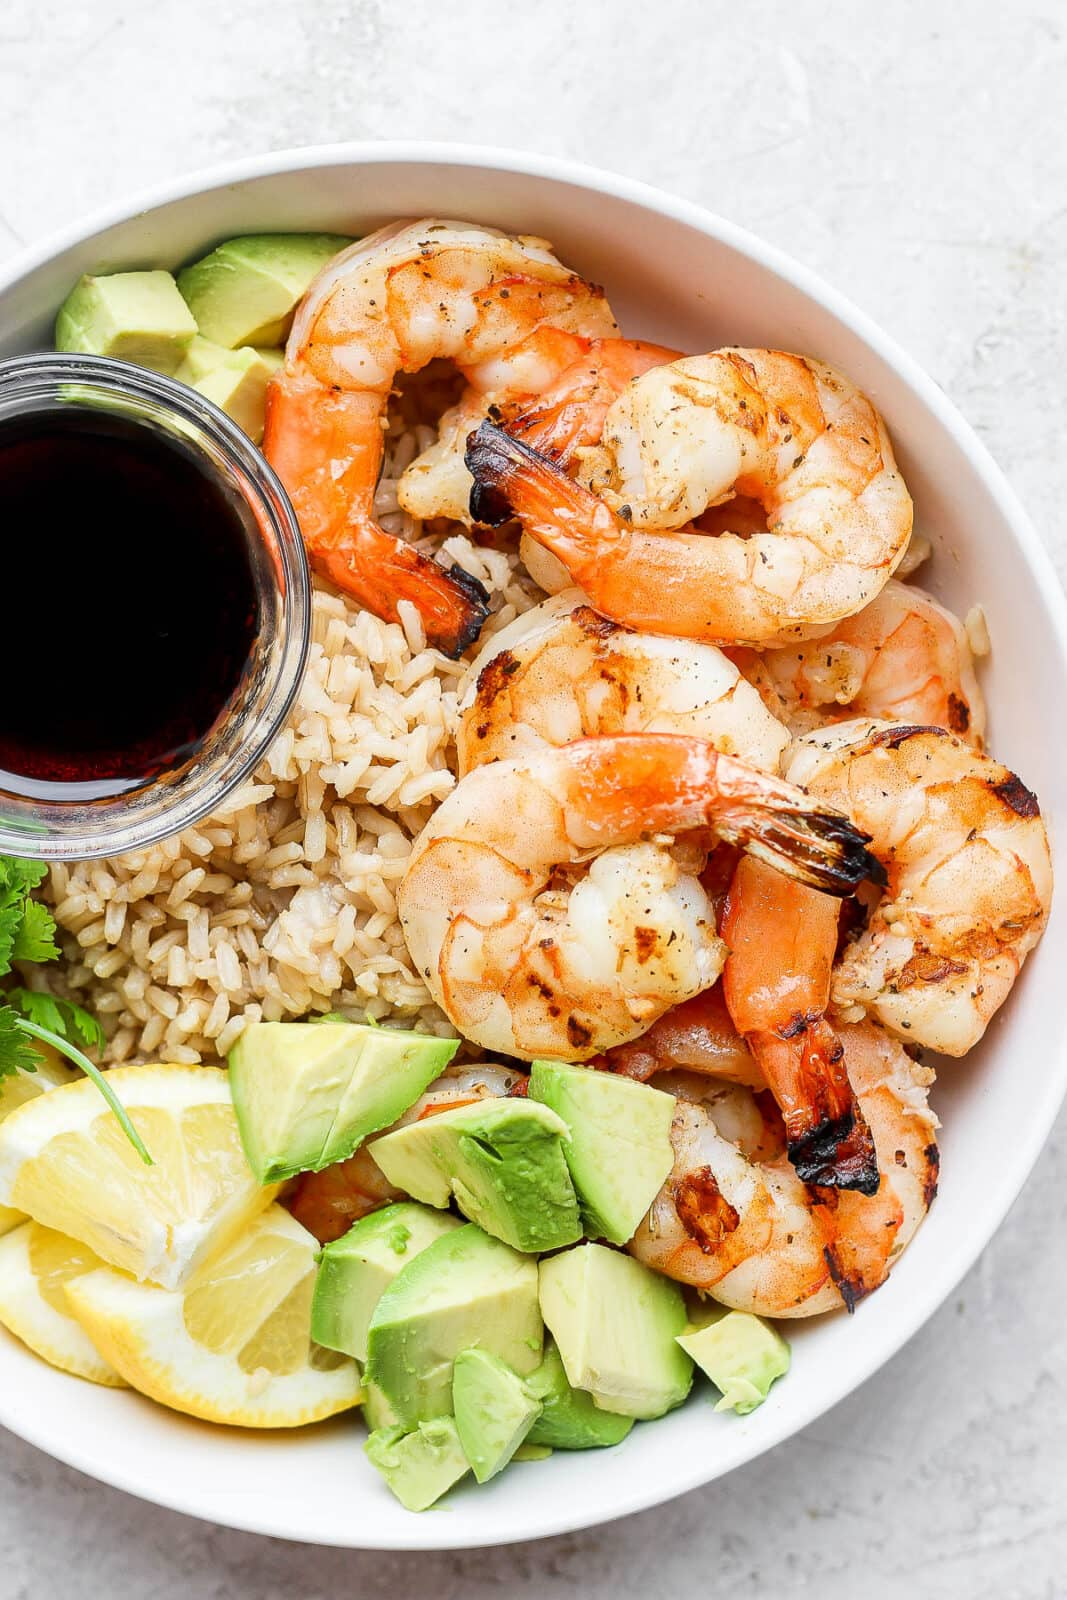 Pan fried shrimp in a bowl with rice, avocado, and a dish of soy sauce.